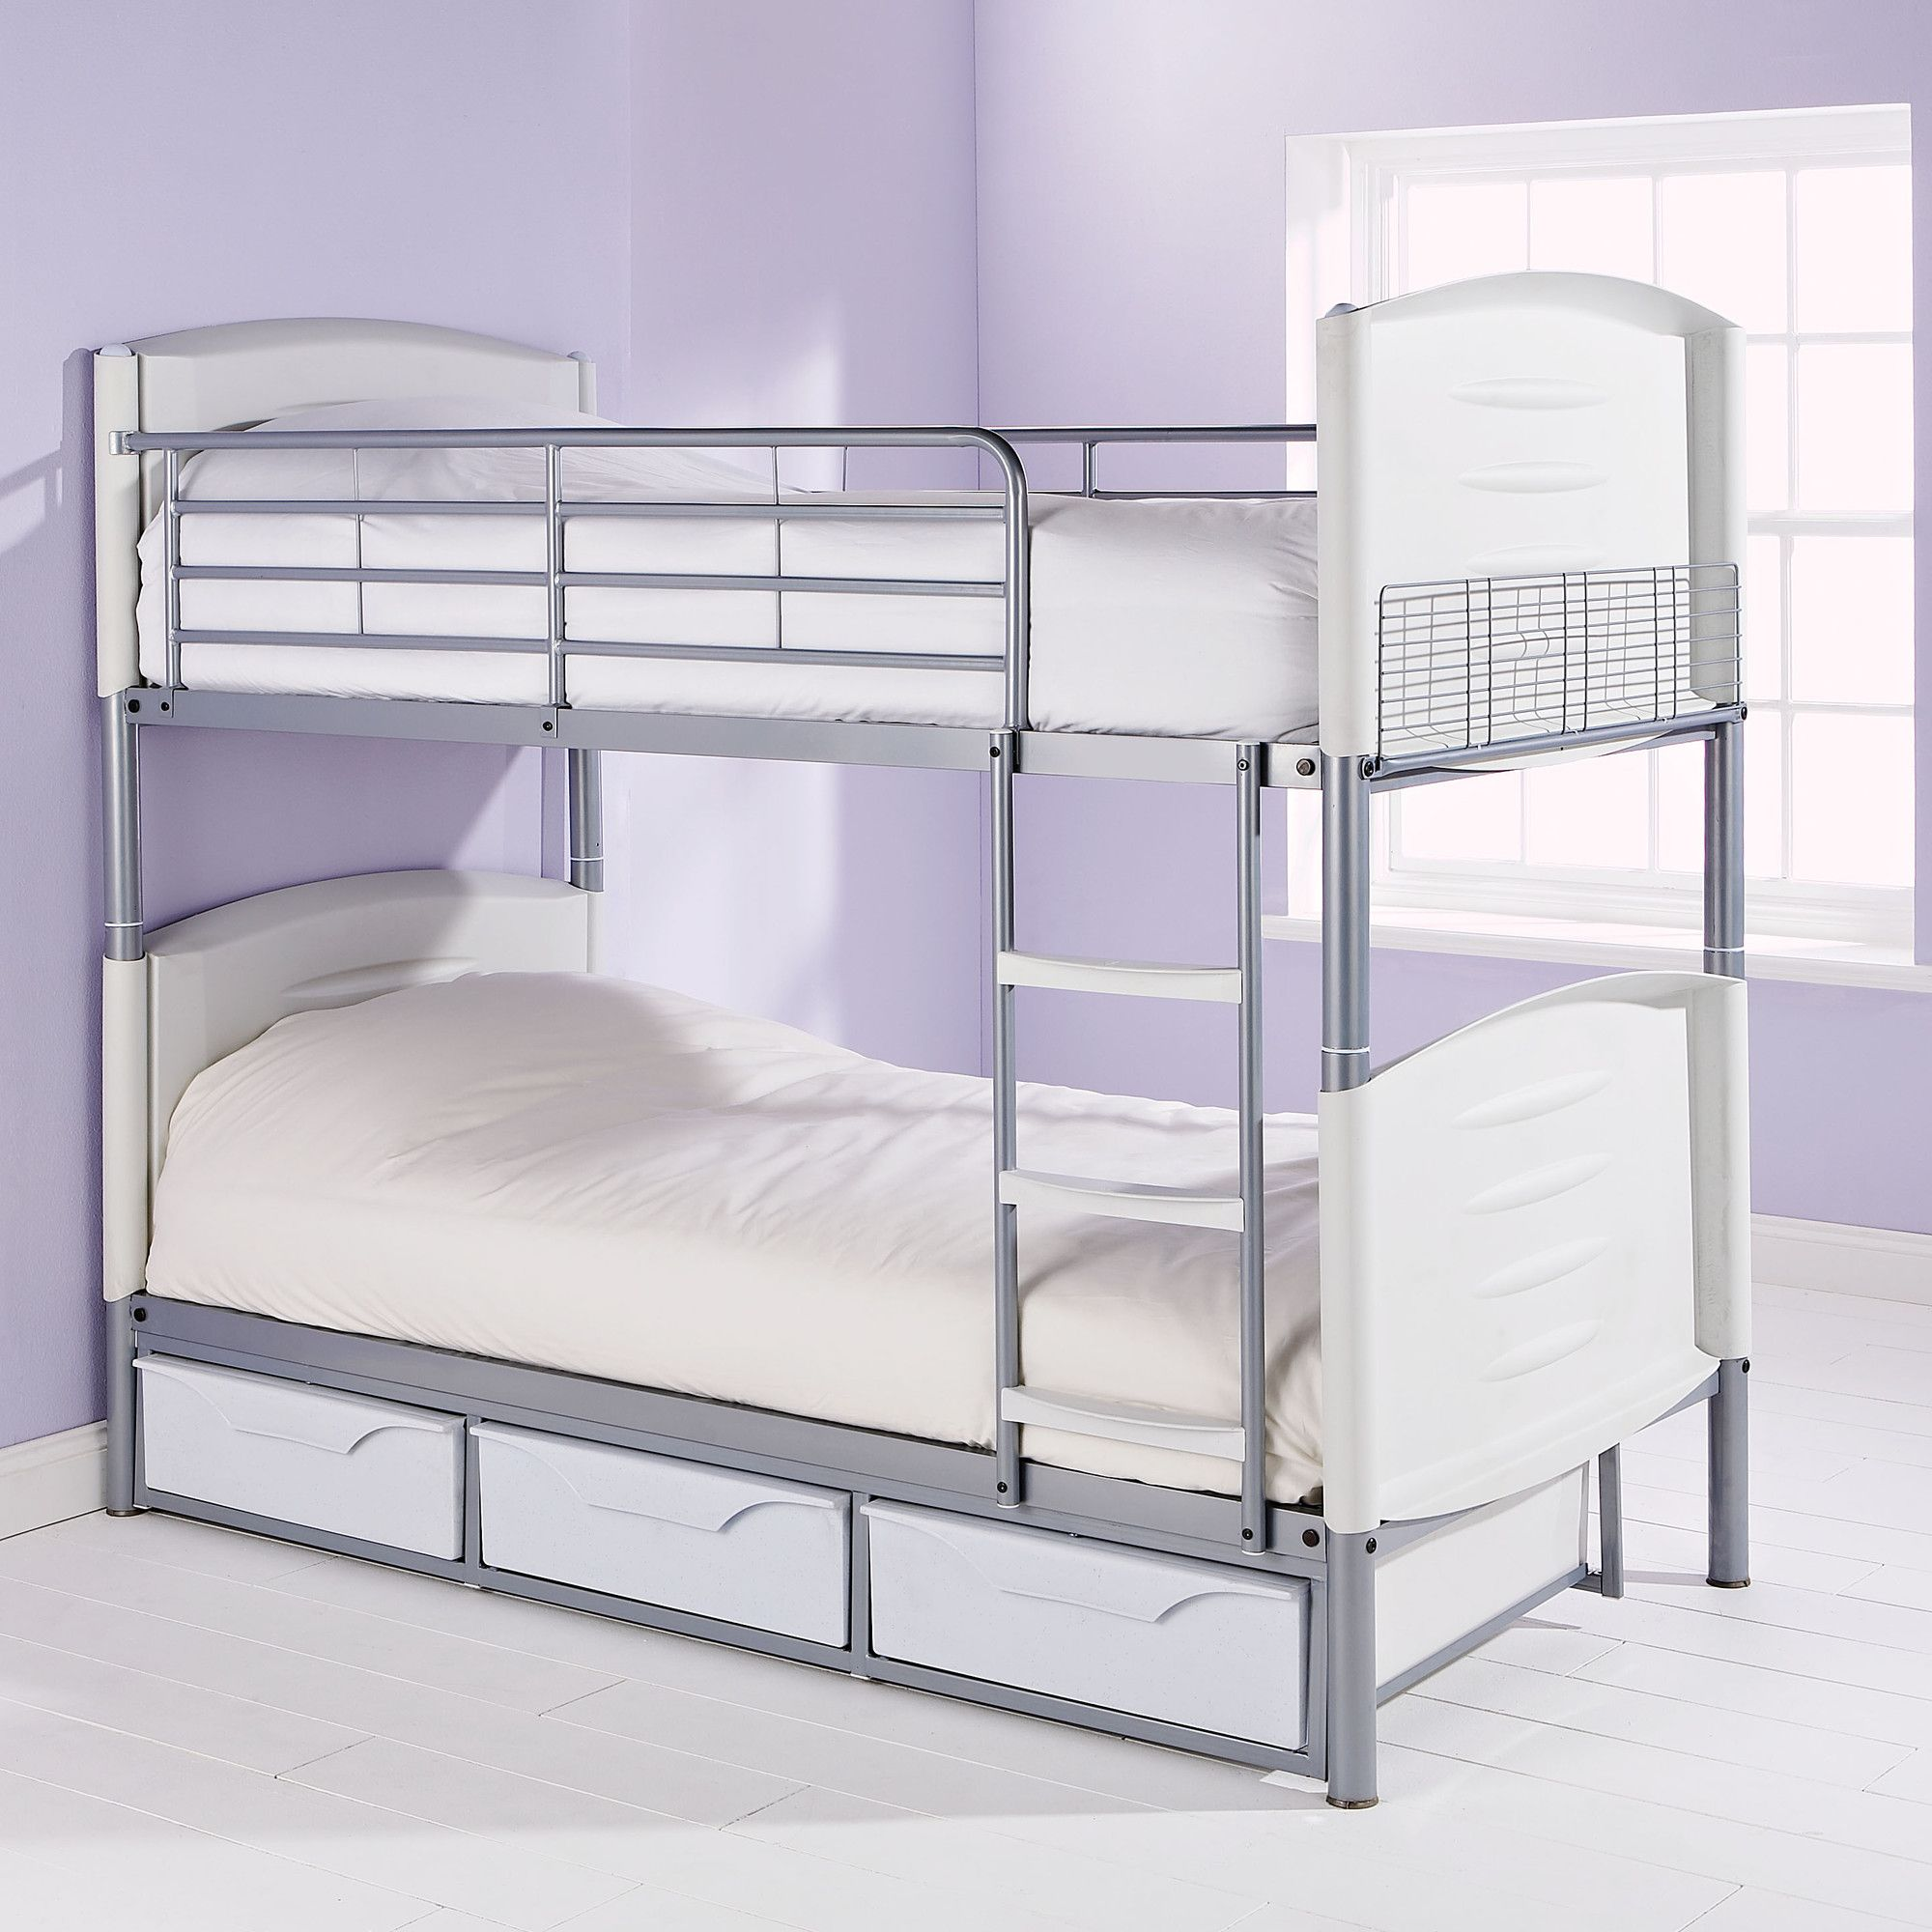 Elements Double Storage Bunk Bed - Pink at Tescos Direct